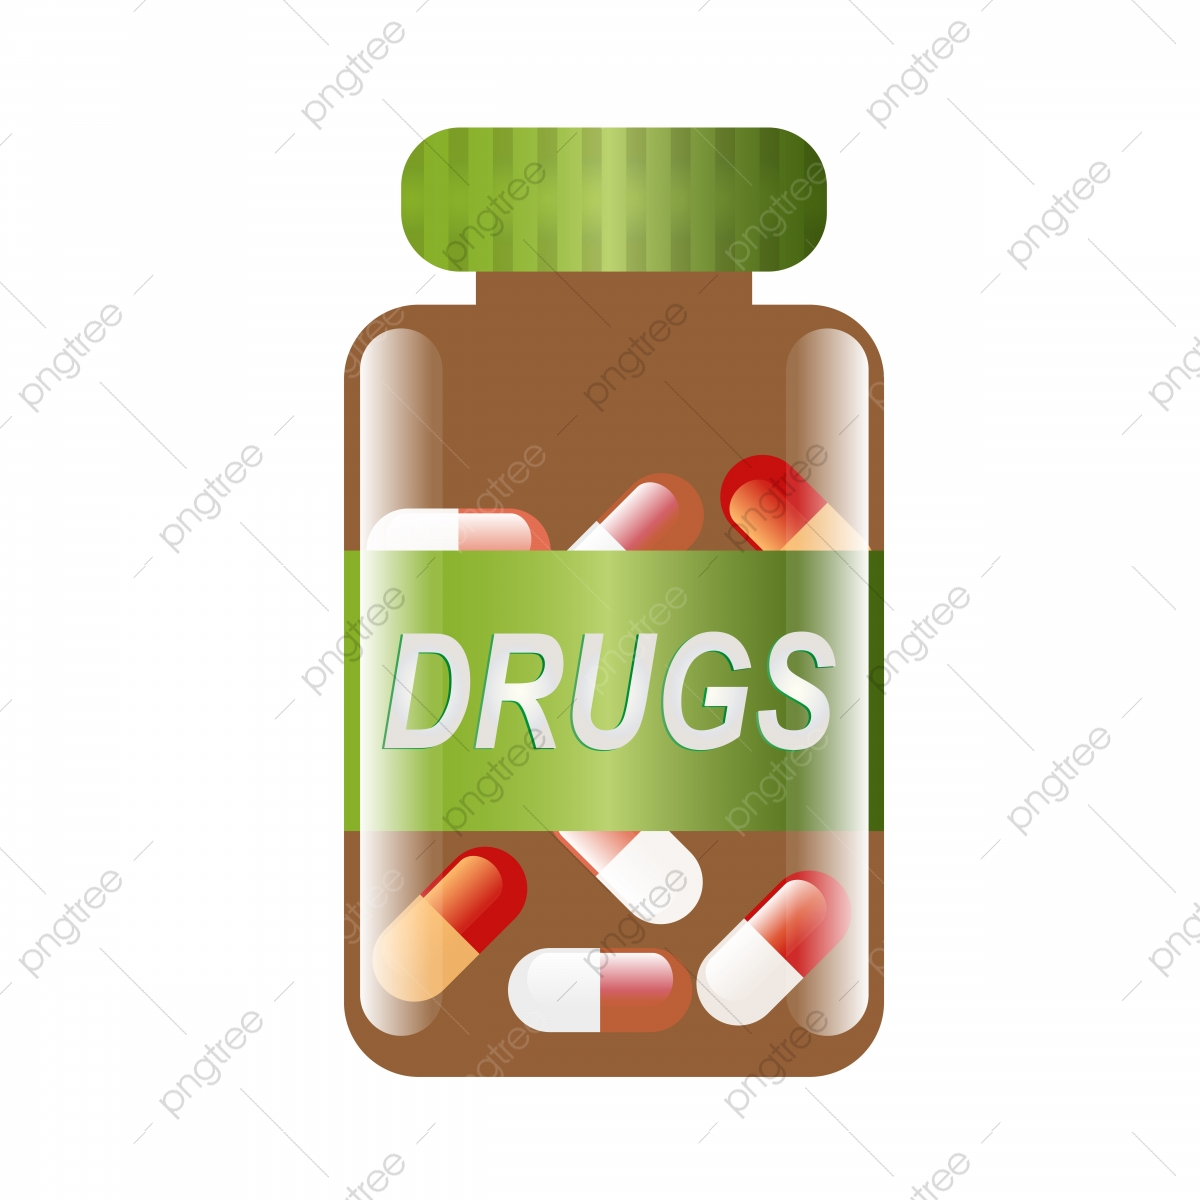 drugs vector png vector psd and clipart with transparent background for free download pngtree https pngtree com freepng bottle drugs vector icon 5344156 html